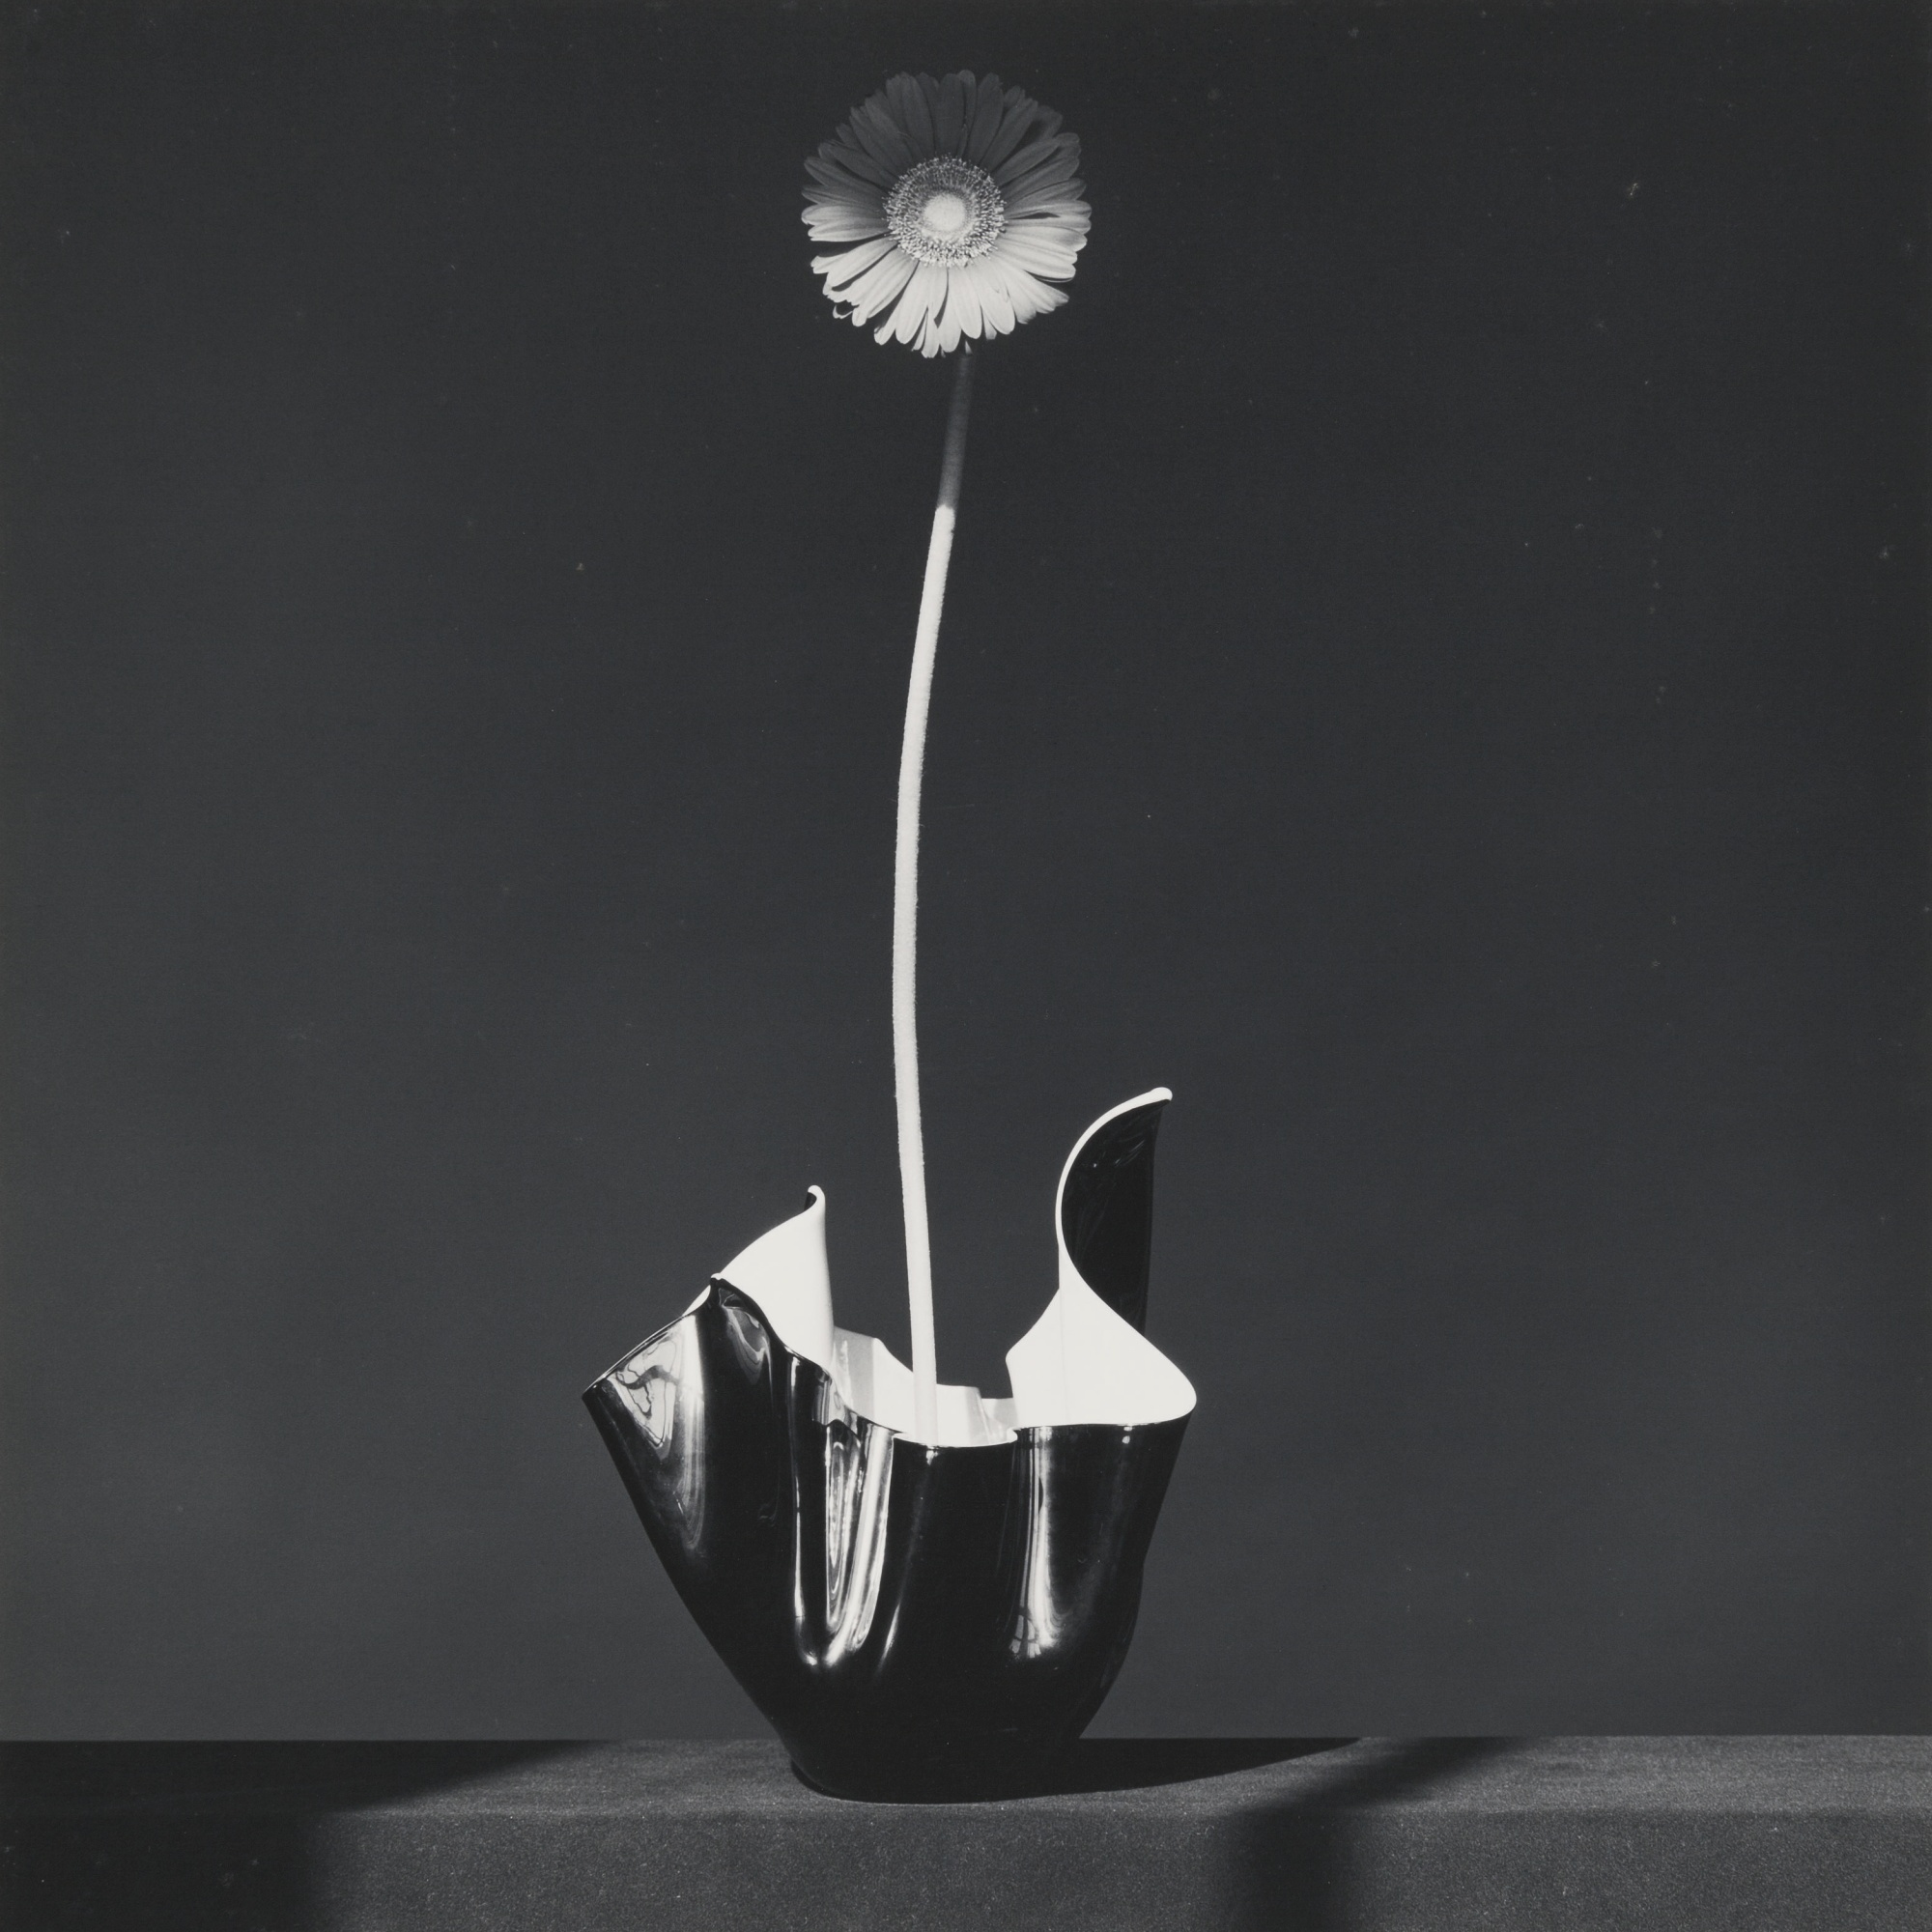 Robert Mapplethorpe-African Daisy-1982